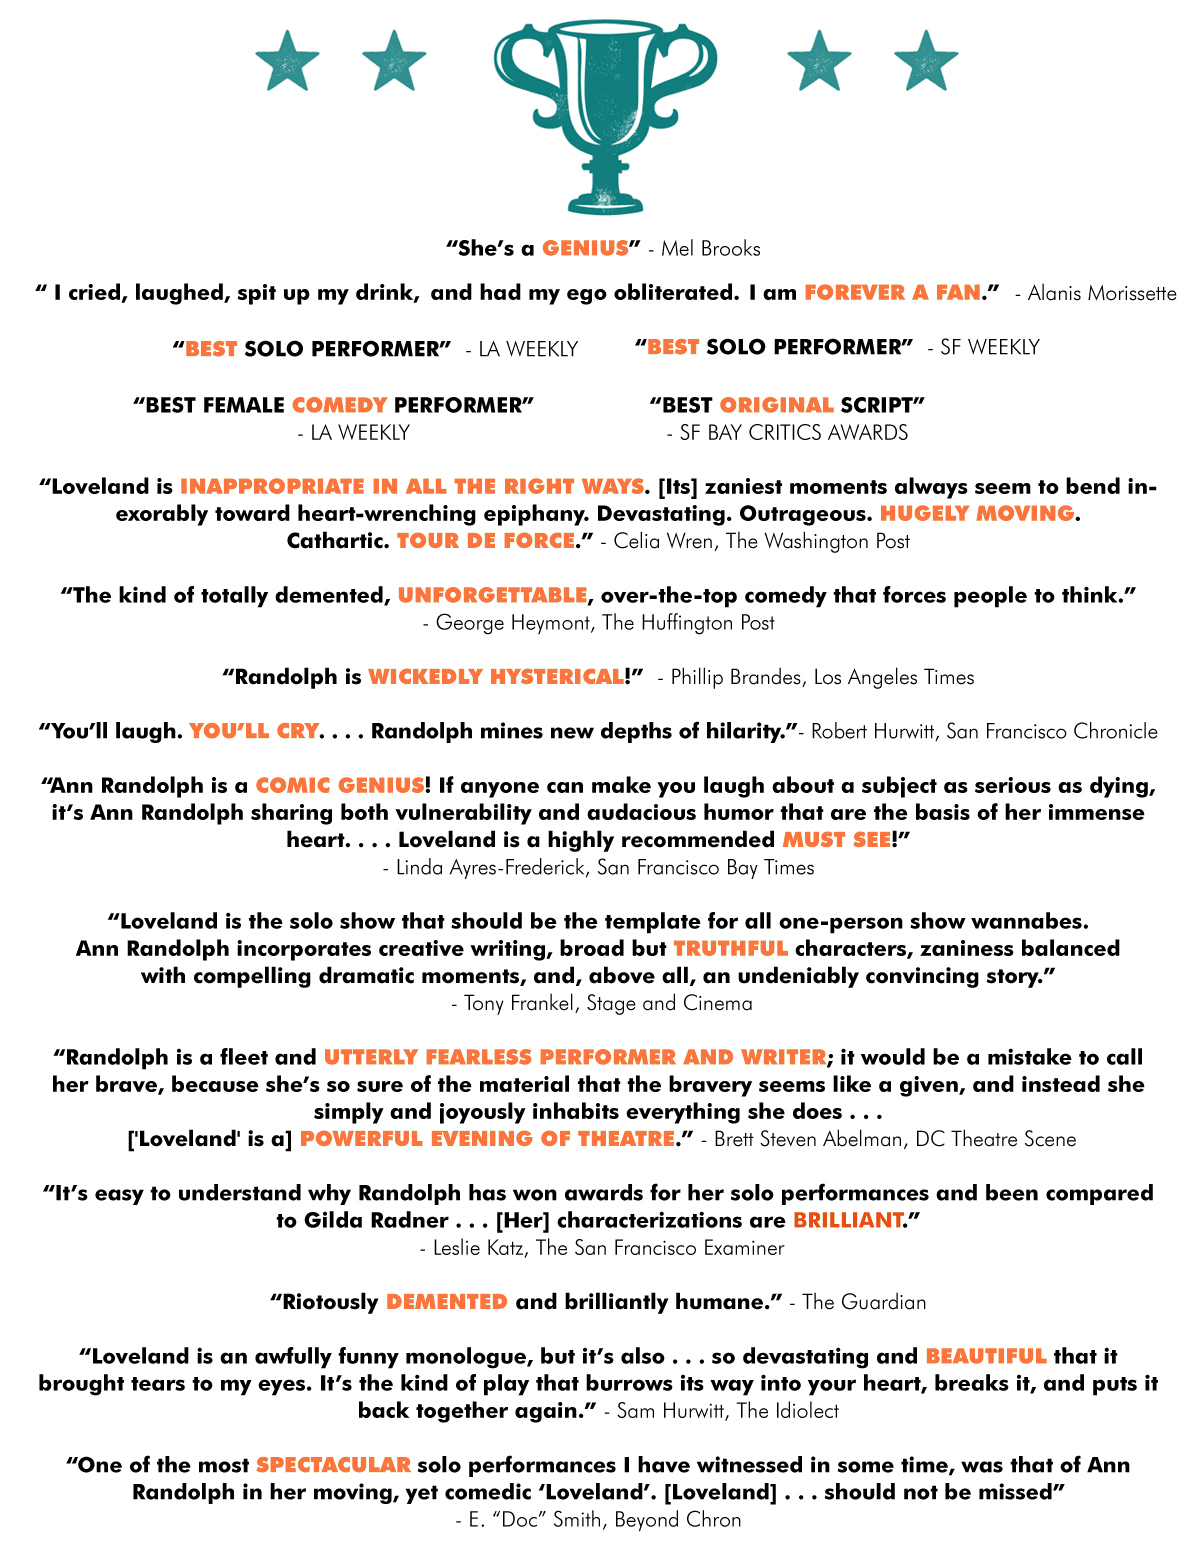 ANNRANDOLPH_QUOTESHEET_orange.jpg